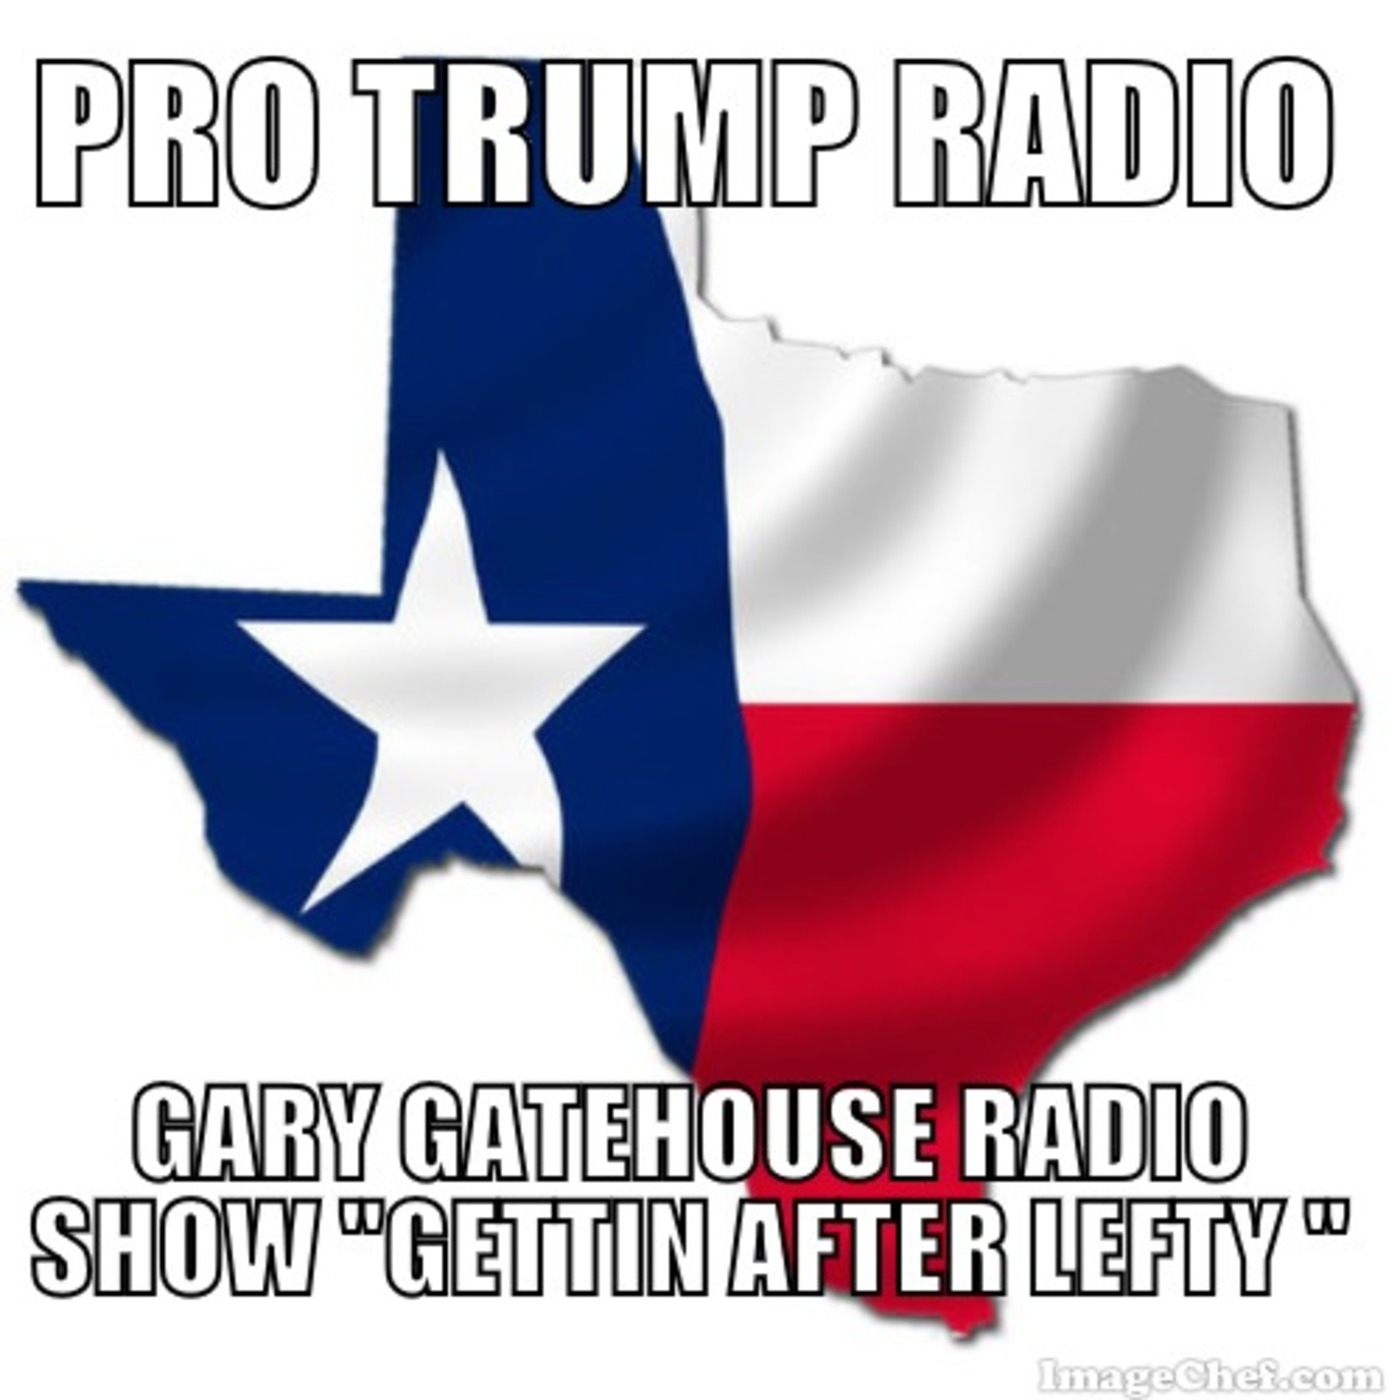 GARY GATEHOUSE RADIO SHOW